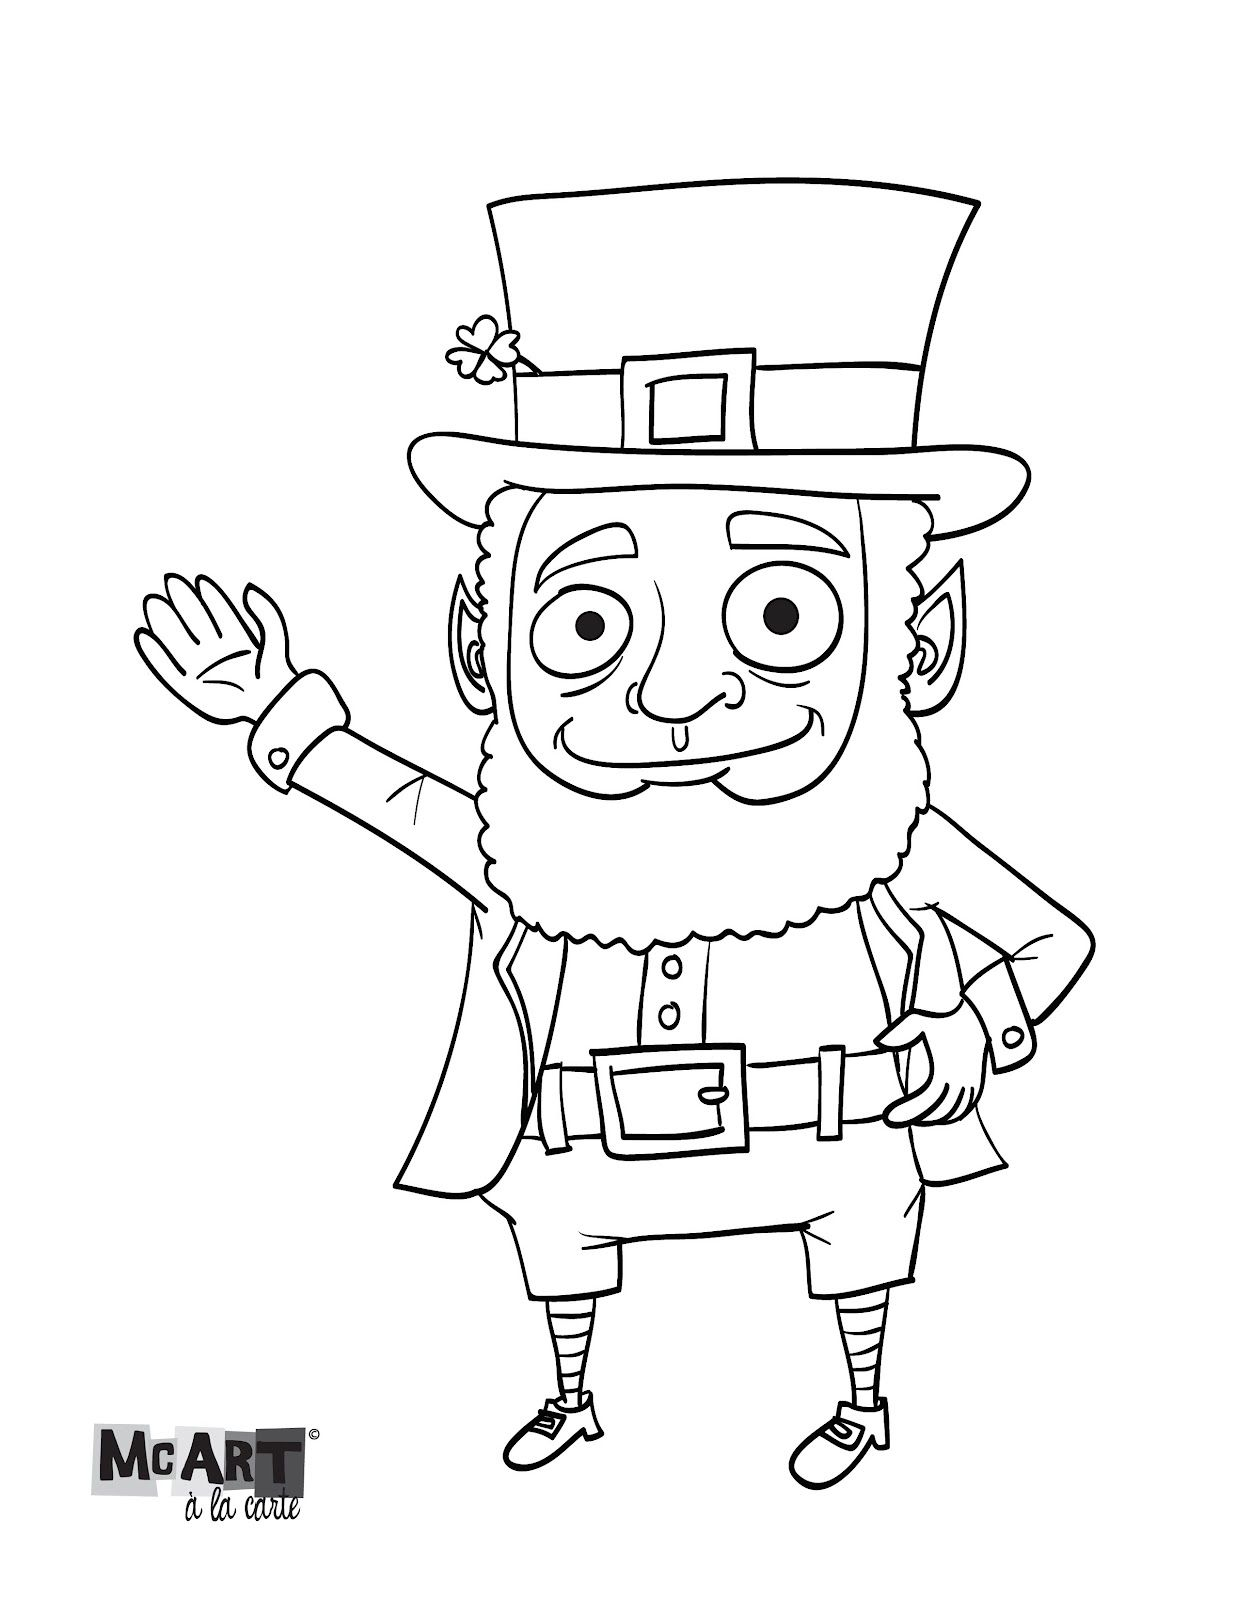 Coloring pictures leprechauns - Mcart La Carte Leprechaun Coloring Page